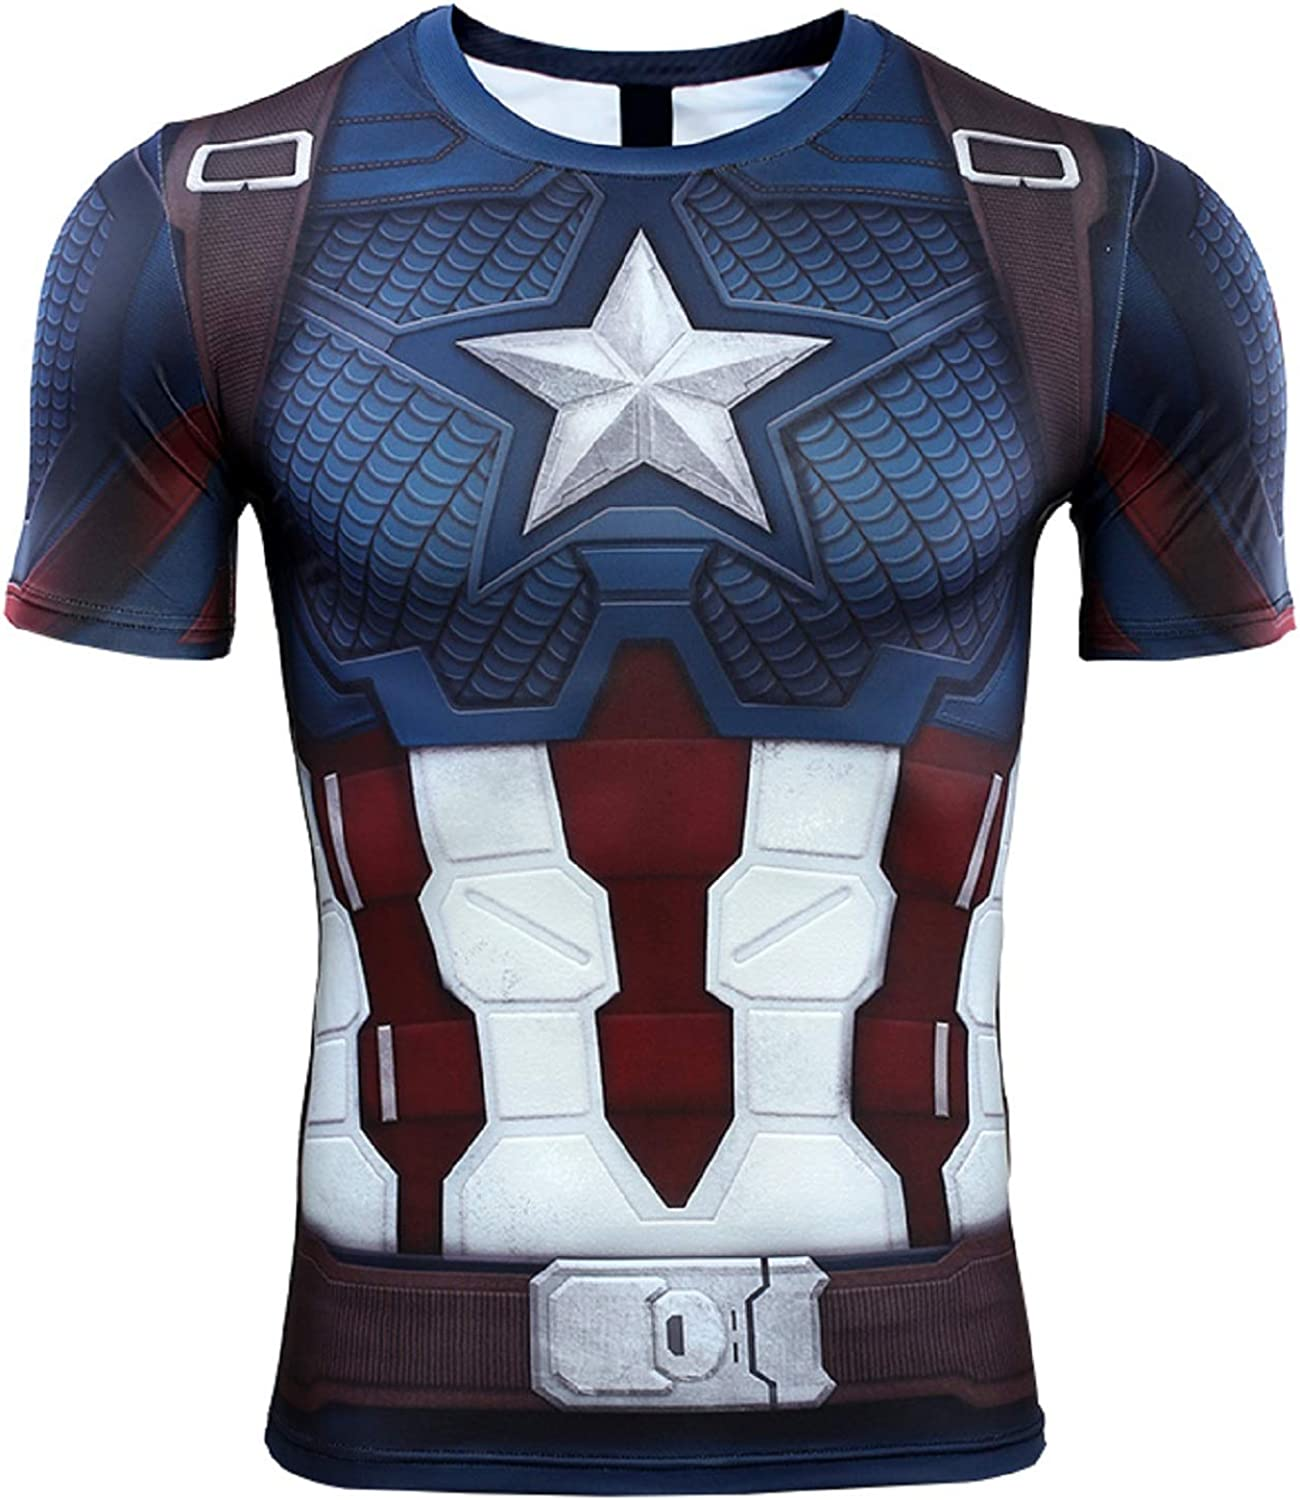 Short Sleeve 3D Print T-Shirt for Men's Captain America Compression Shirt